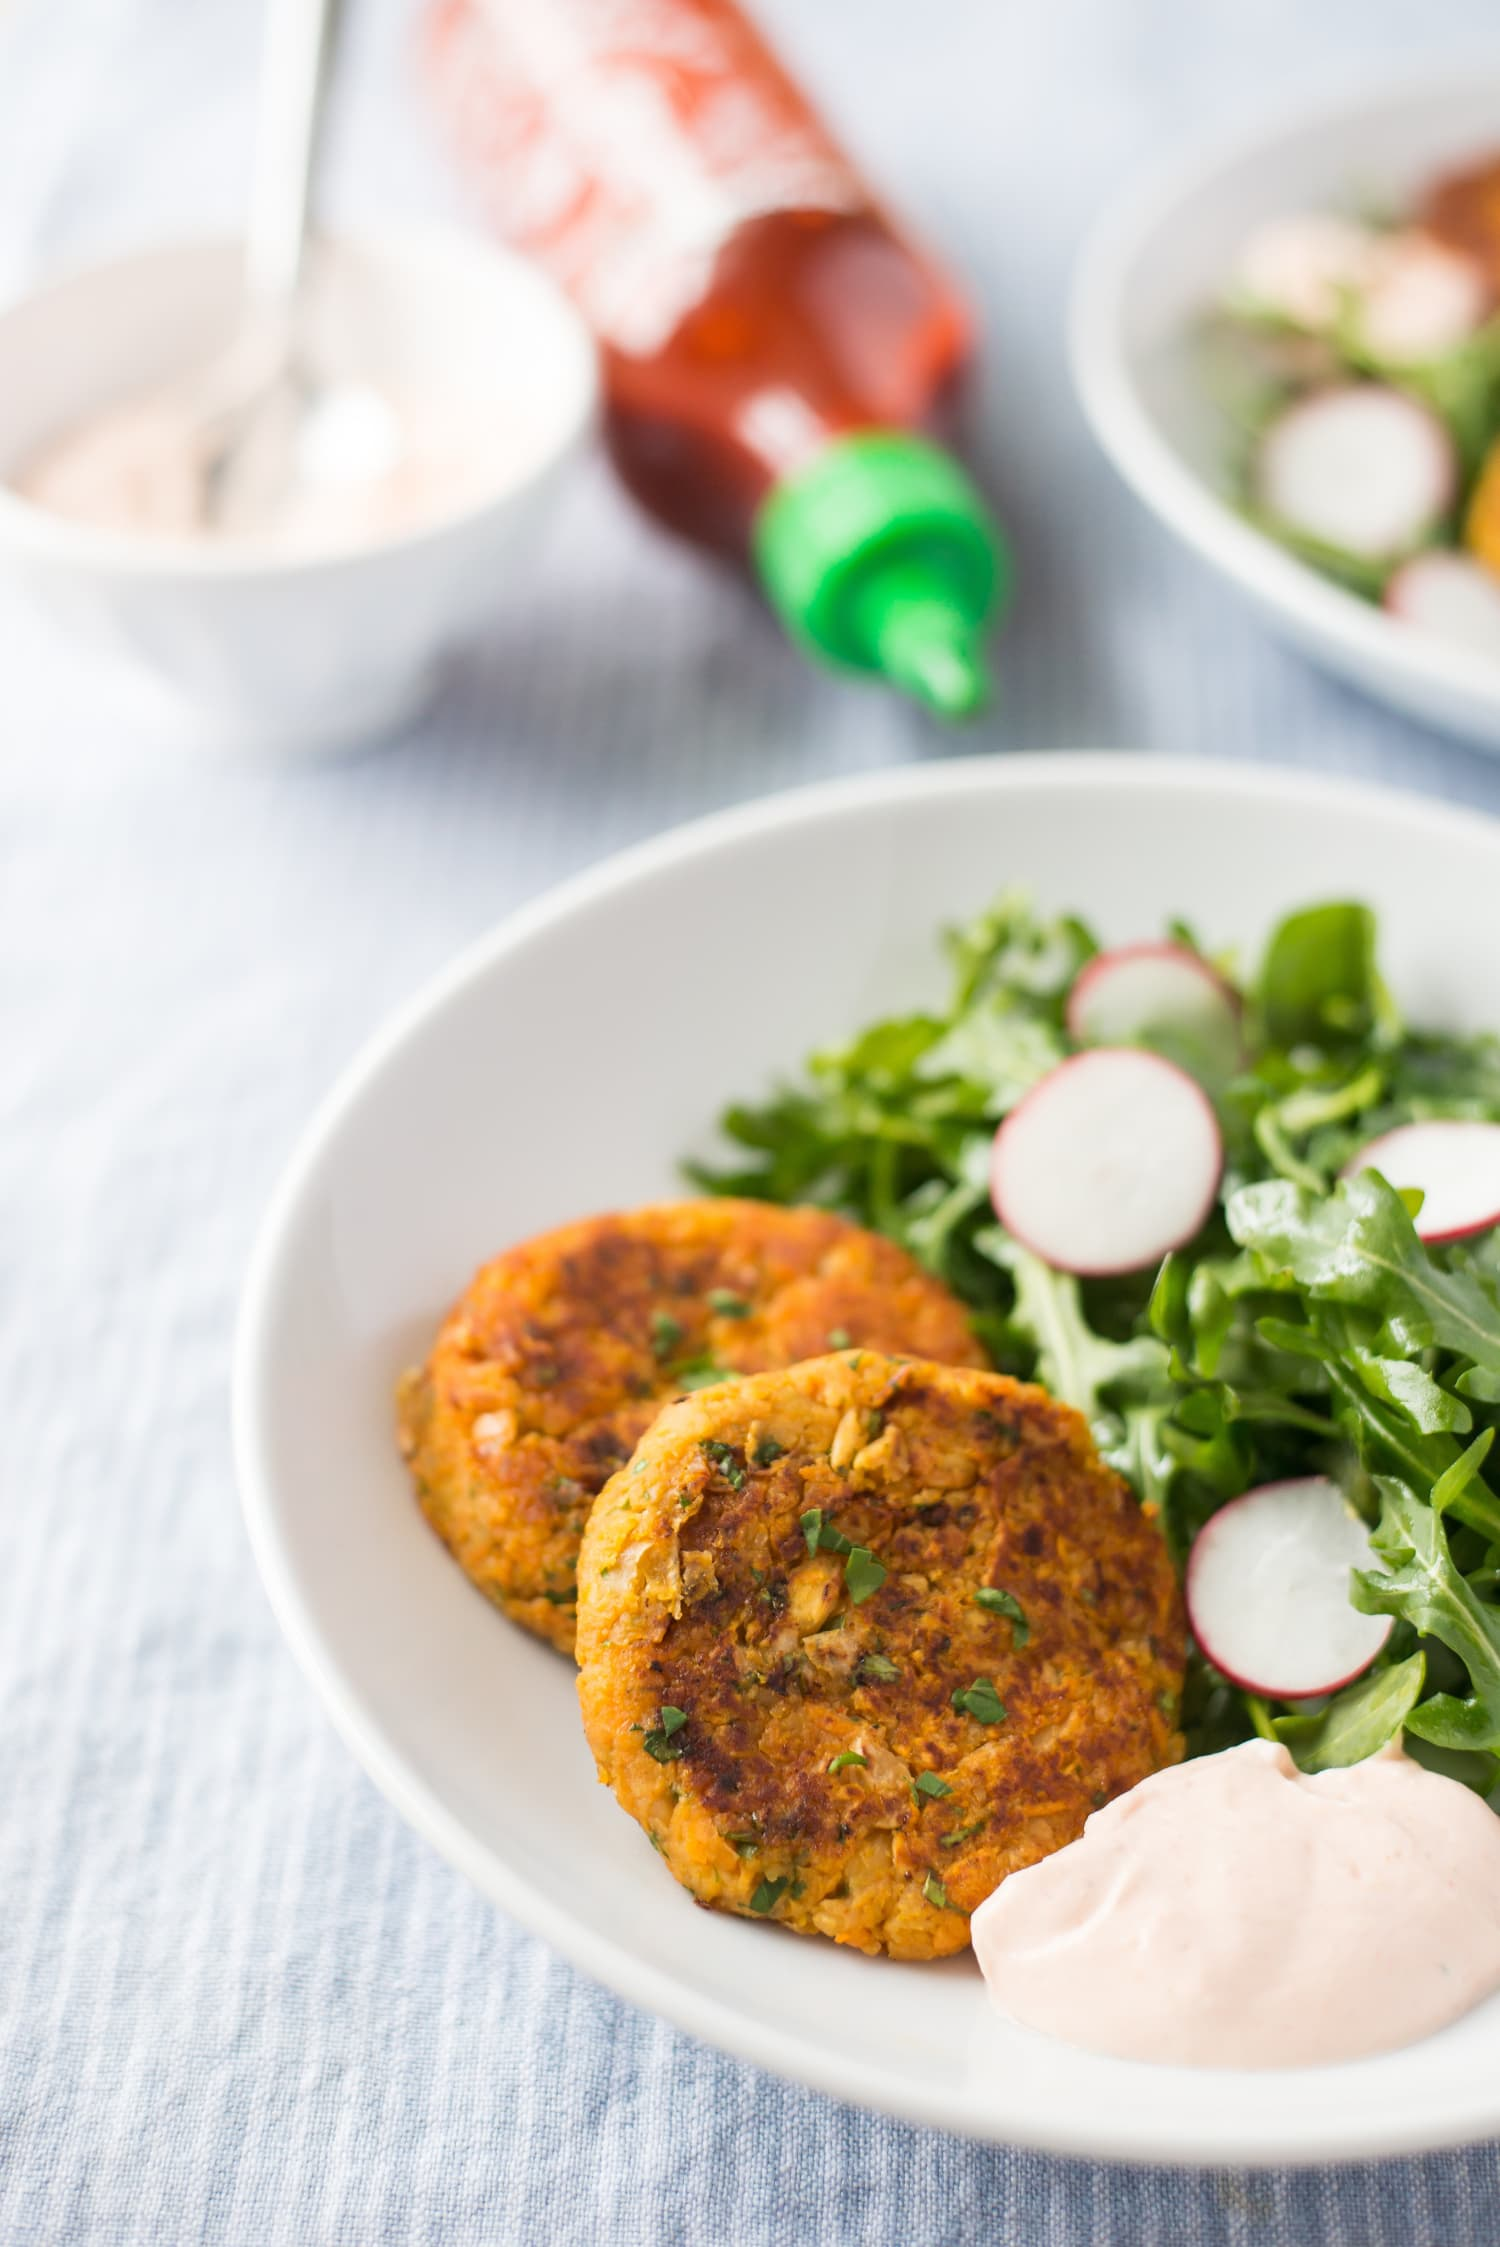 Recipe: Sweet Potato-Chickpea Patties with Sriracha-Yogurt Dip